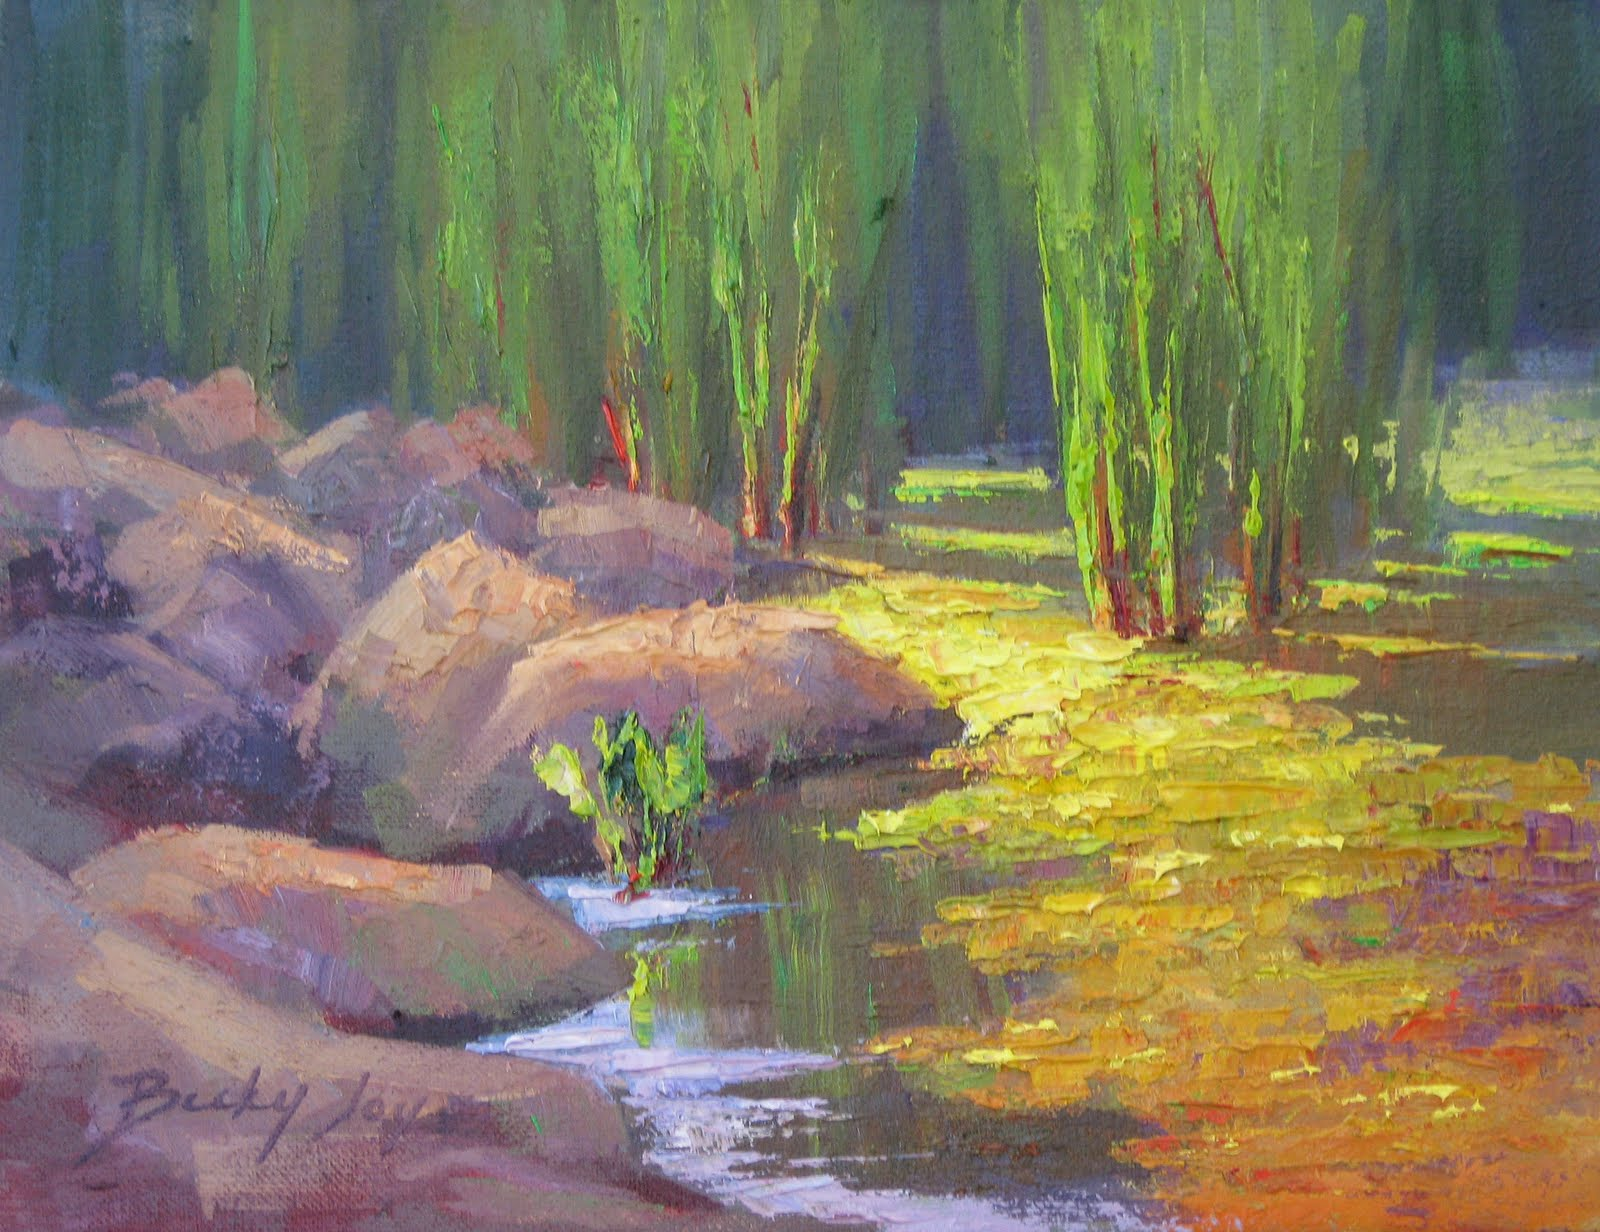 Palette Knife Painters Marsh Grasses Amp Pond Oil Painting By BECKY JOY